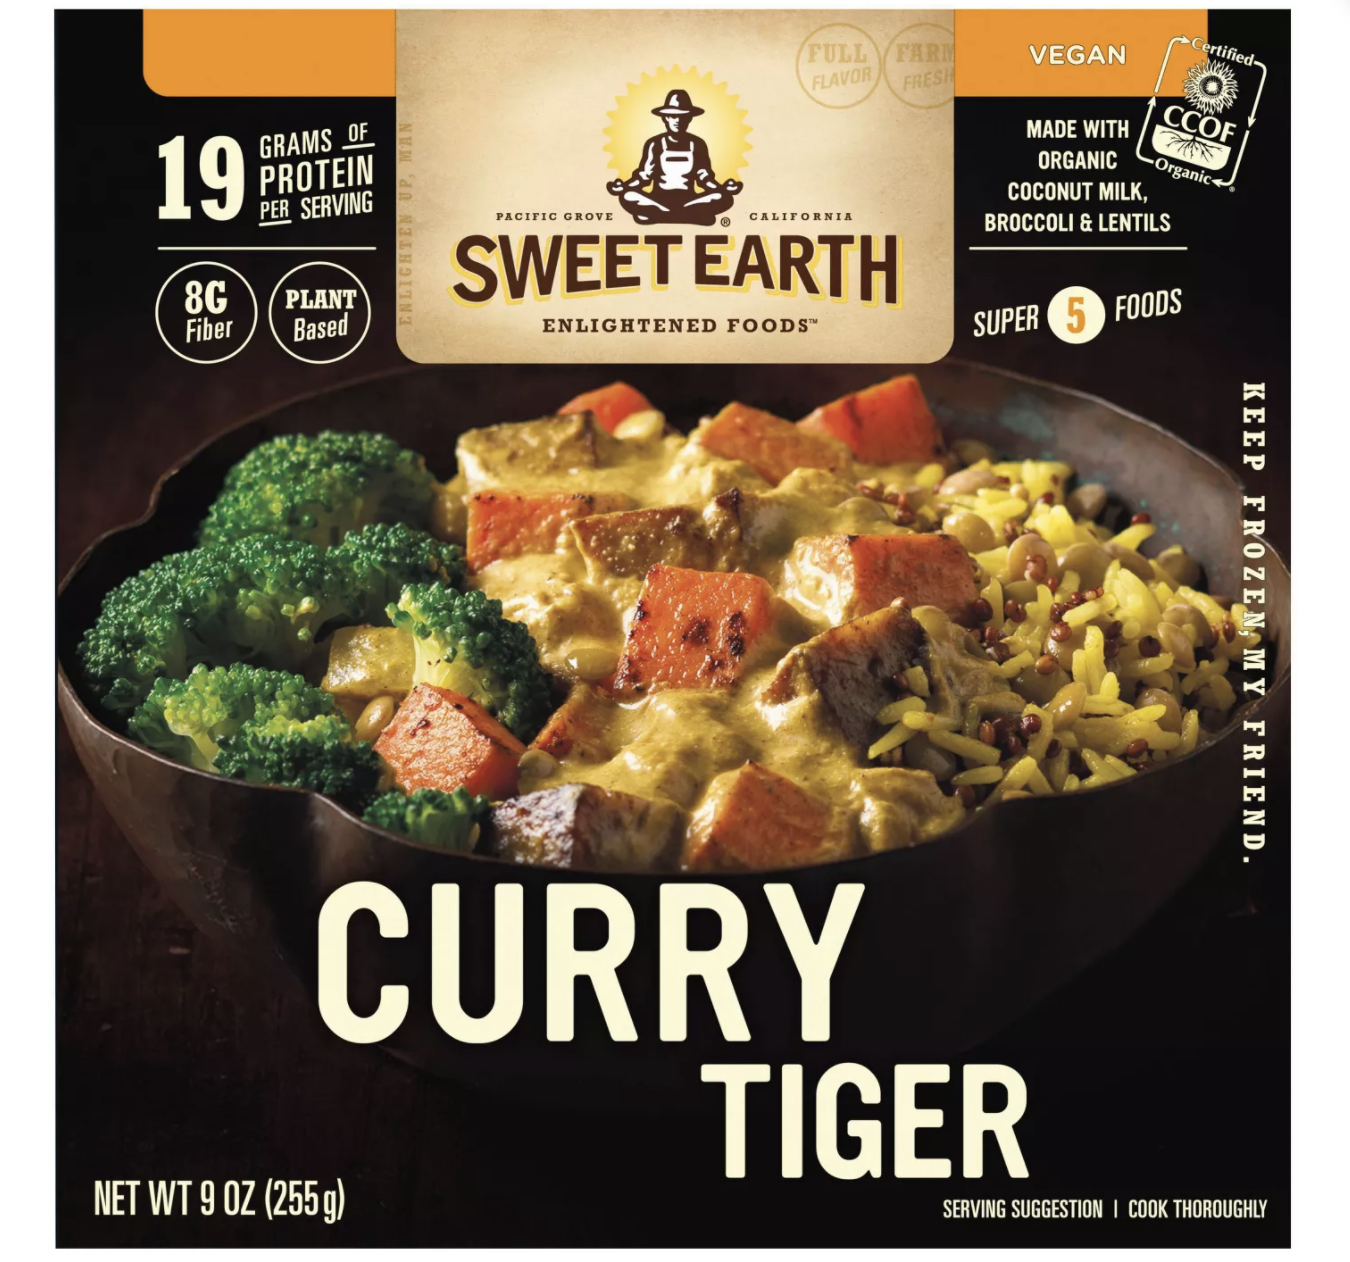 Sweet Earth Vegan Frozen Natural Foods Curry Tiger